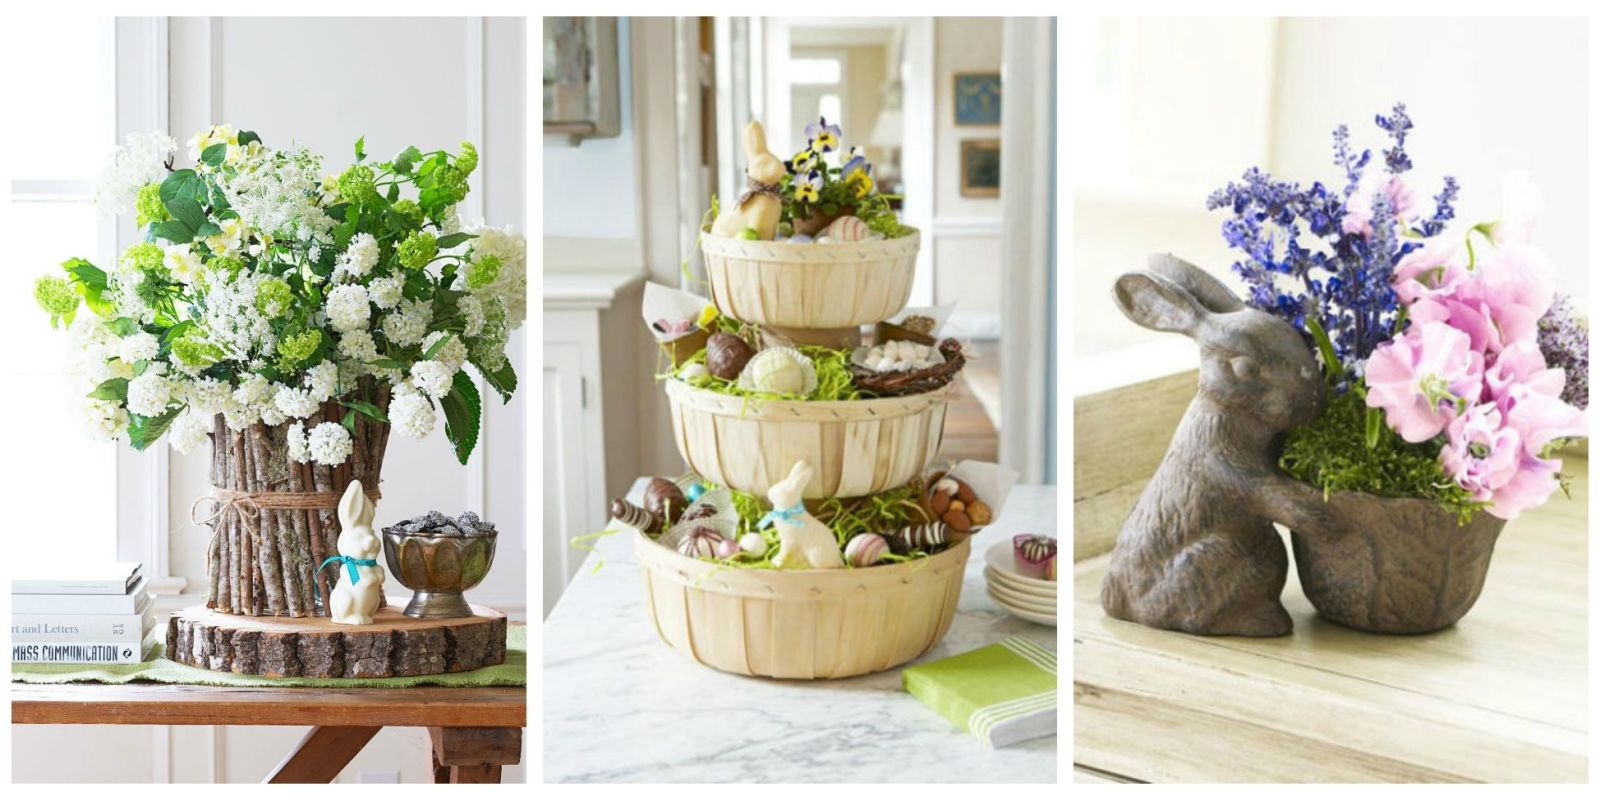 70 diy easter decorations ideas for homemade easter for Diy easter decorations for the home